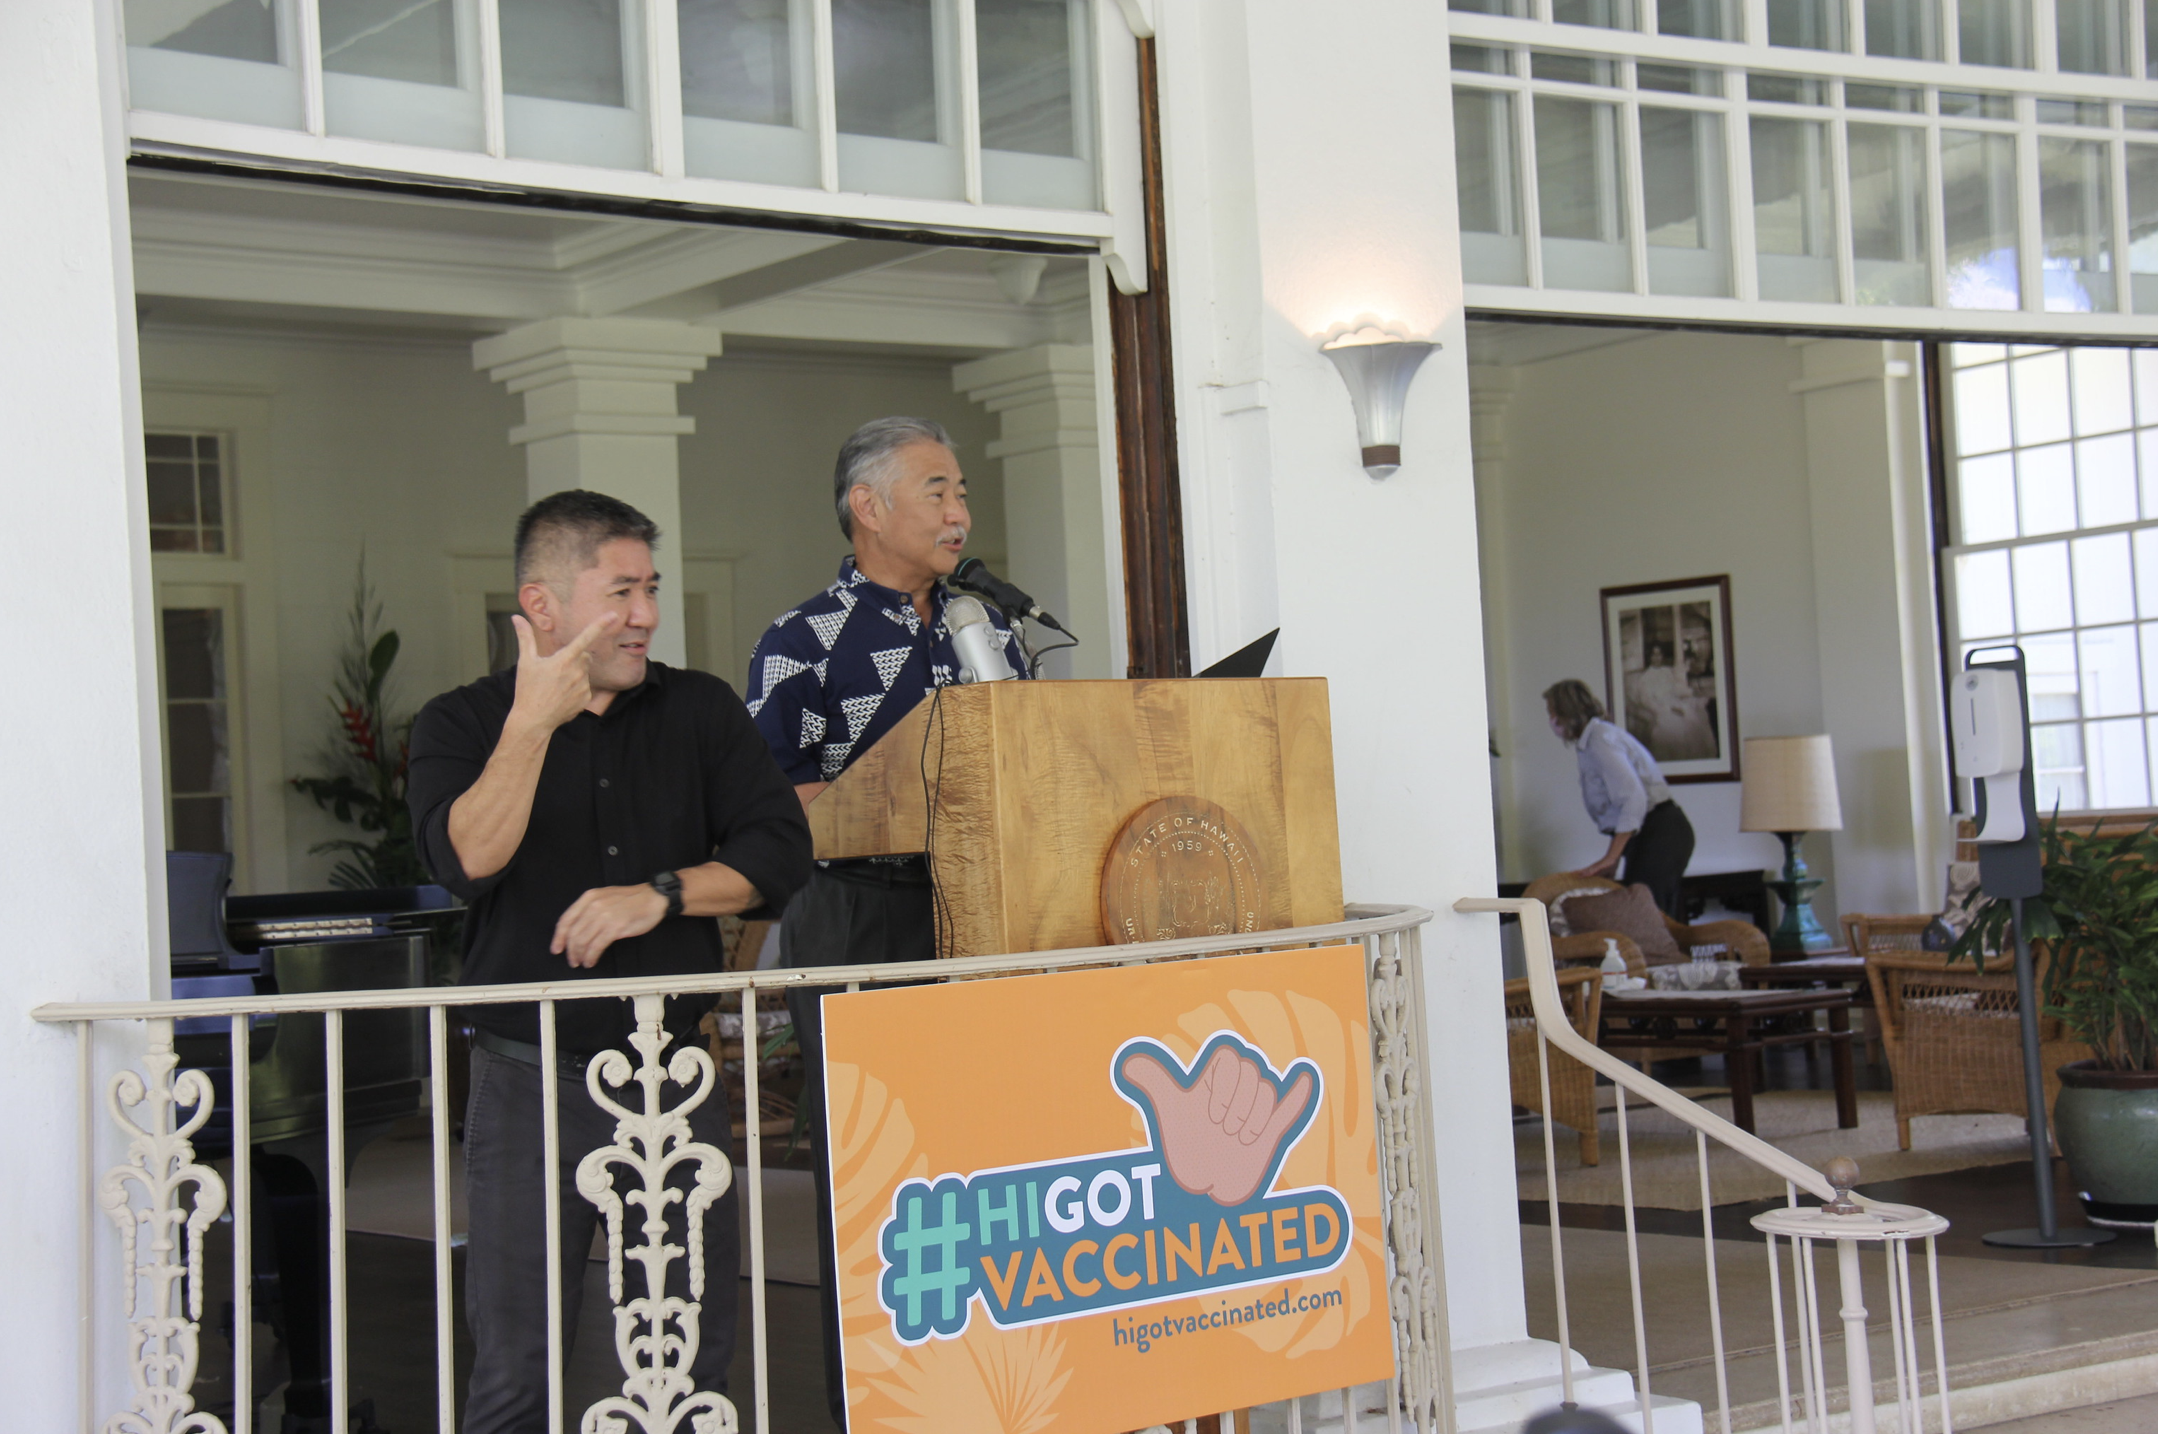 #HIGotVaccinated Announces June Impact, Plans to Extend Campaign